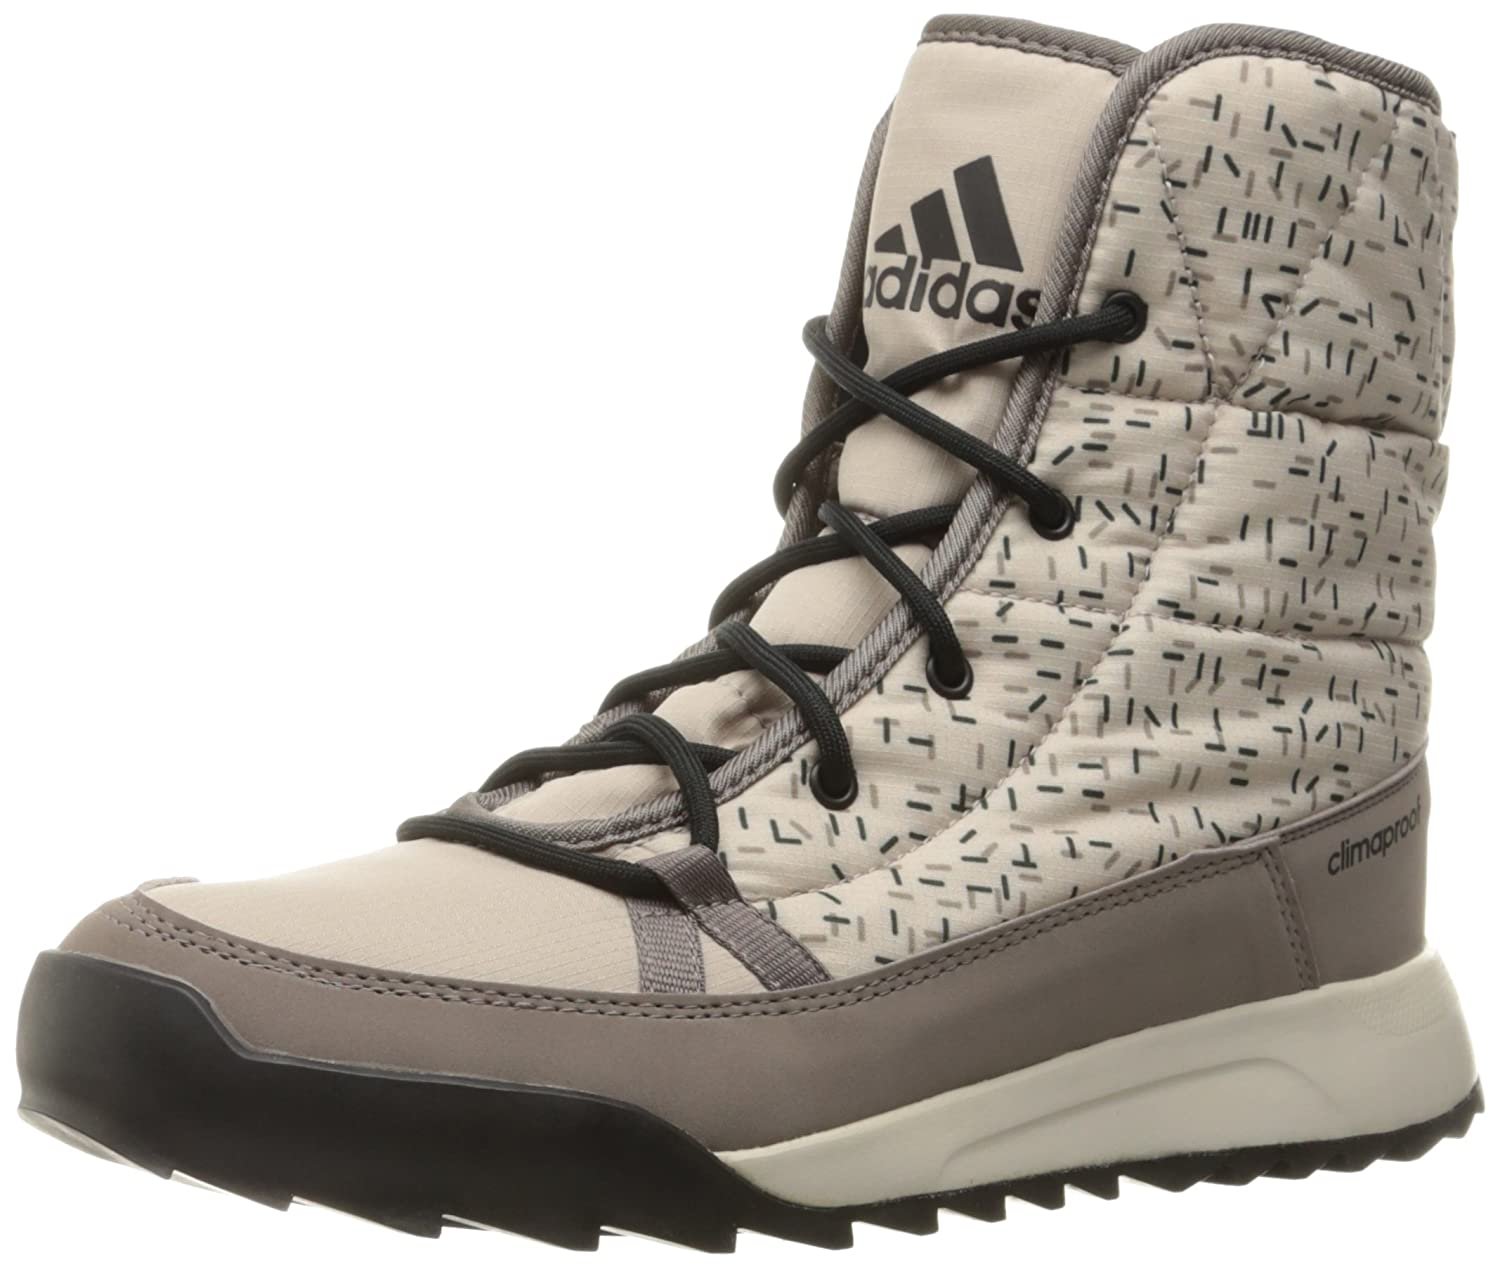 adidas outdoor Women's CW Choleah Insulated CP Snow Boot B018WSWVFS 10 B(M) US|Tech Earth/Vapour Grey/Clear Brown